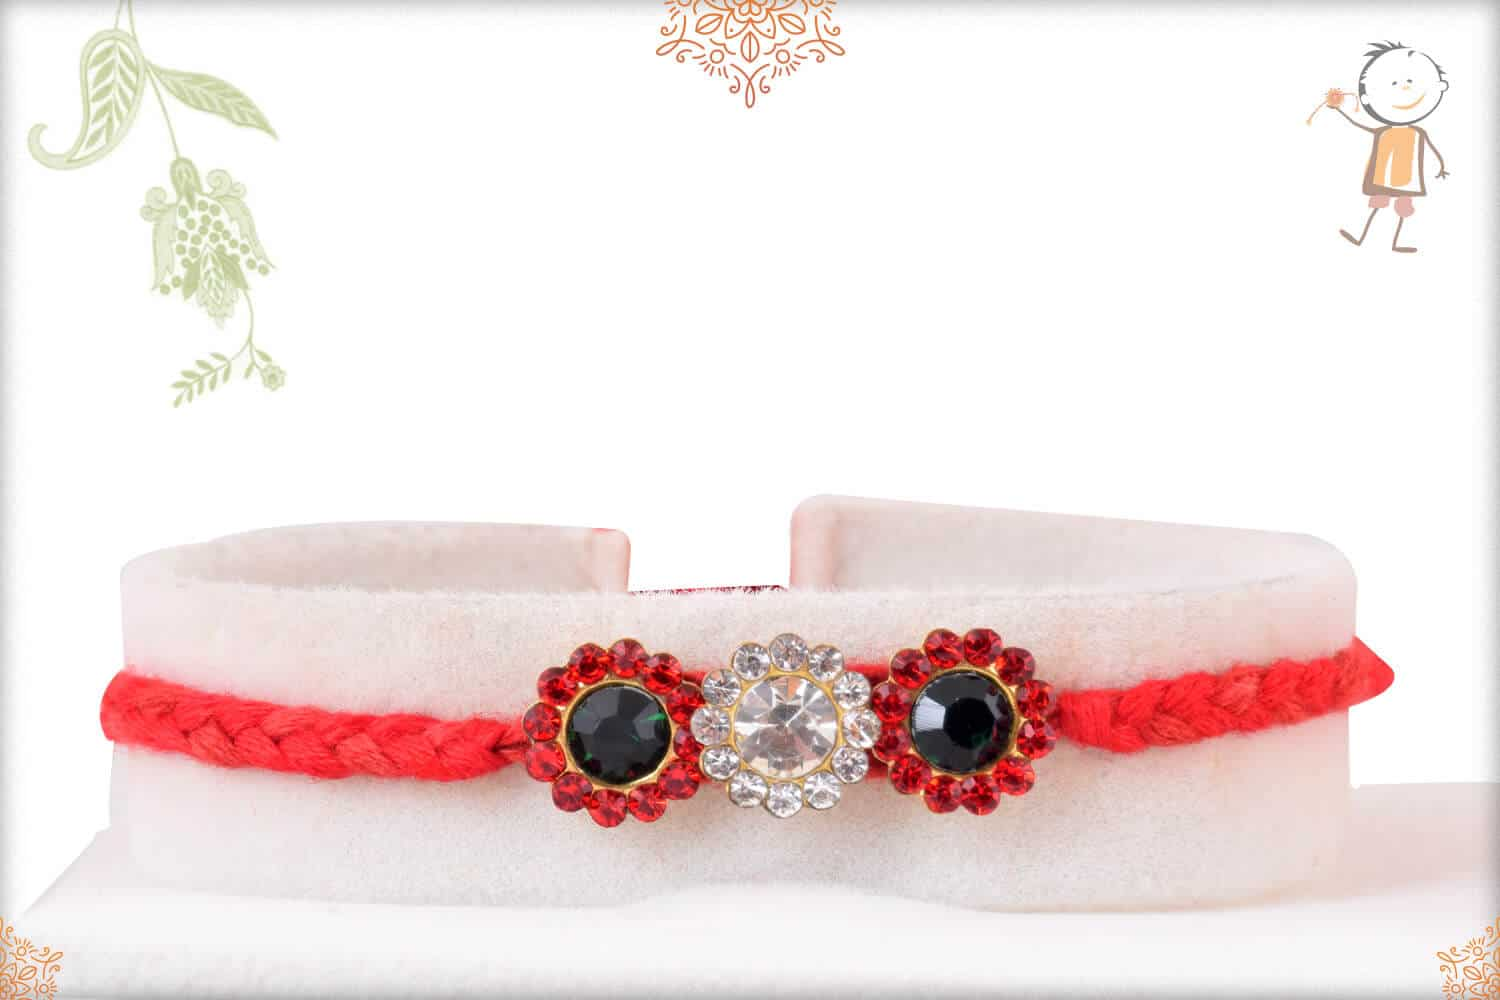 Exclusive Diamond Rakhi with Handcrafted Red Thread 1